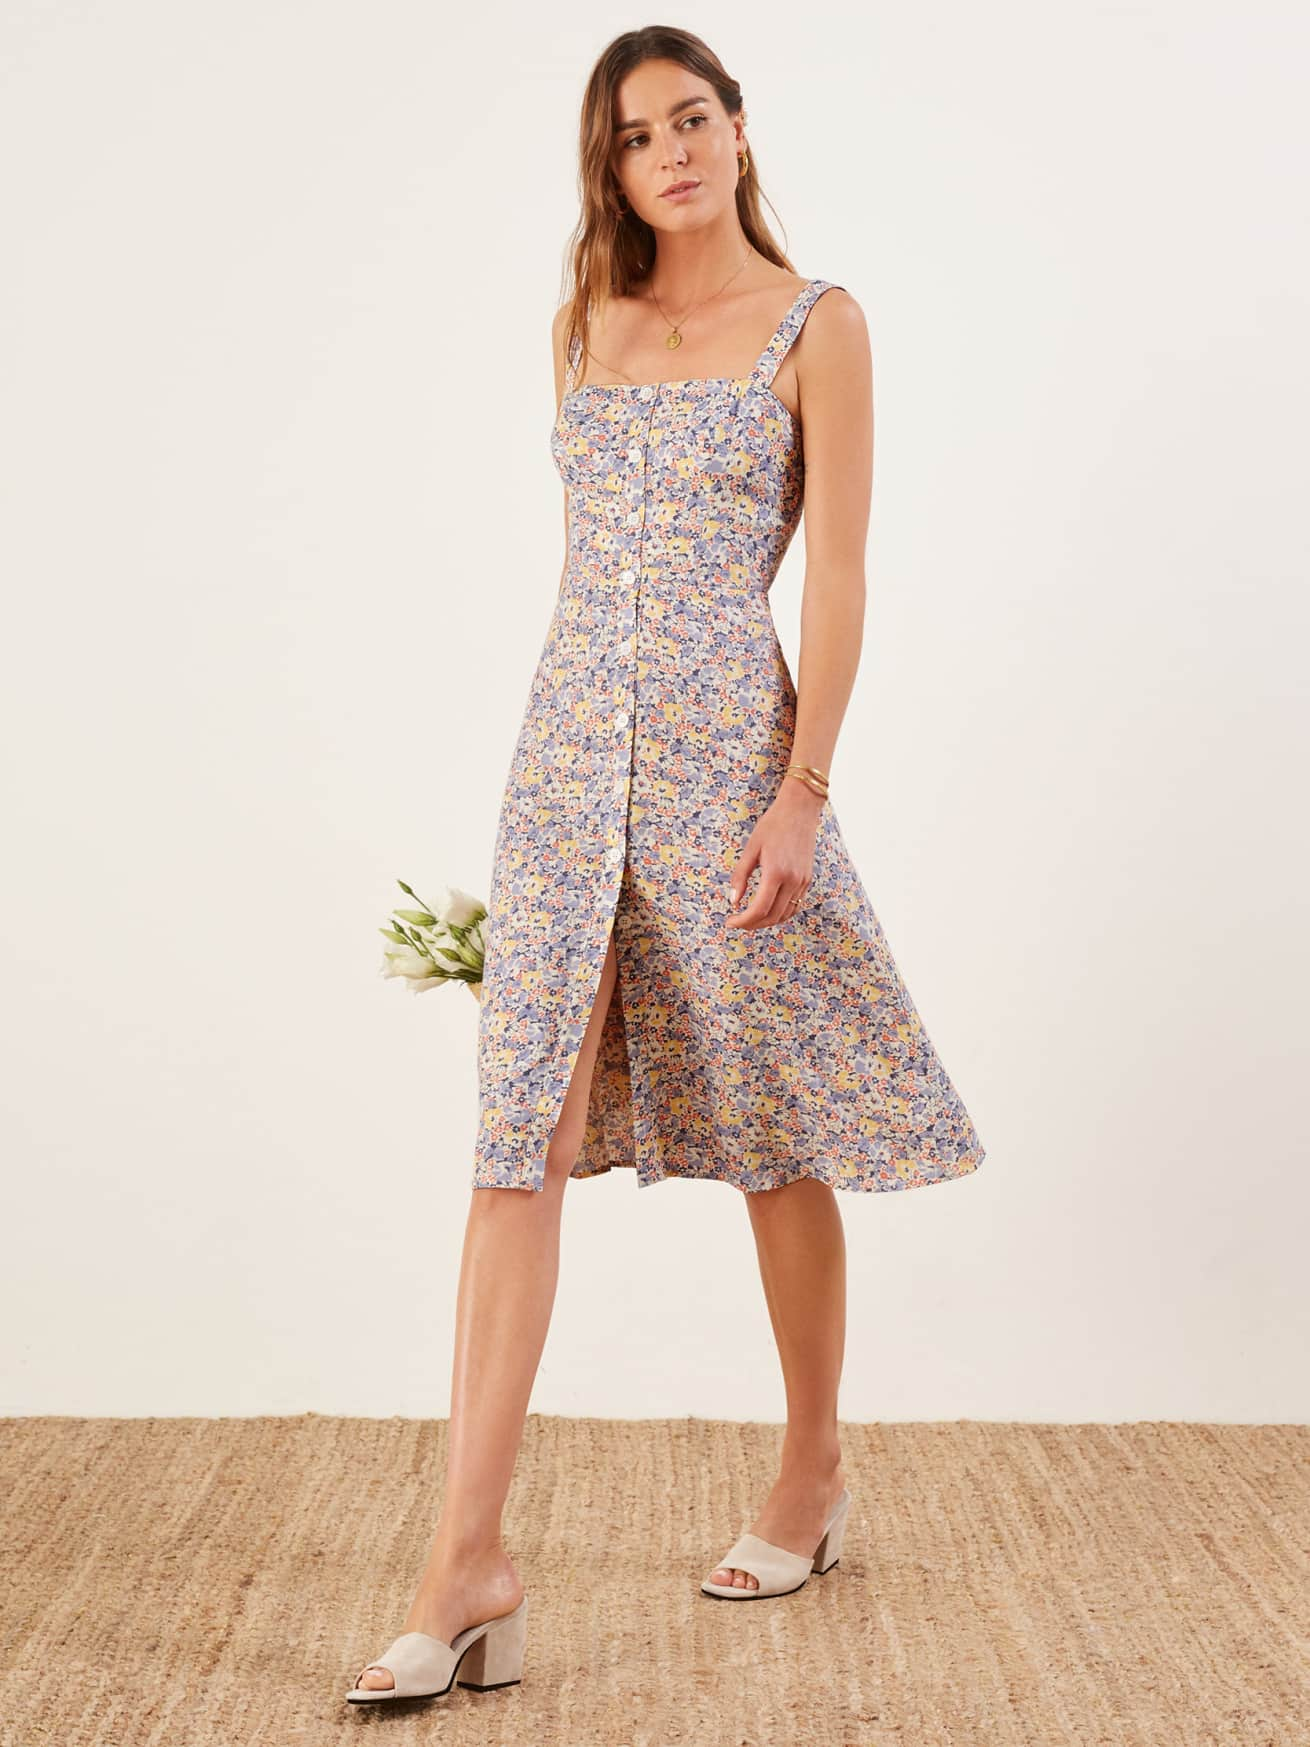 floral button up engagement party dress